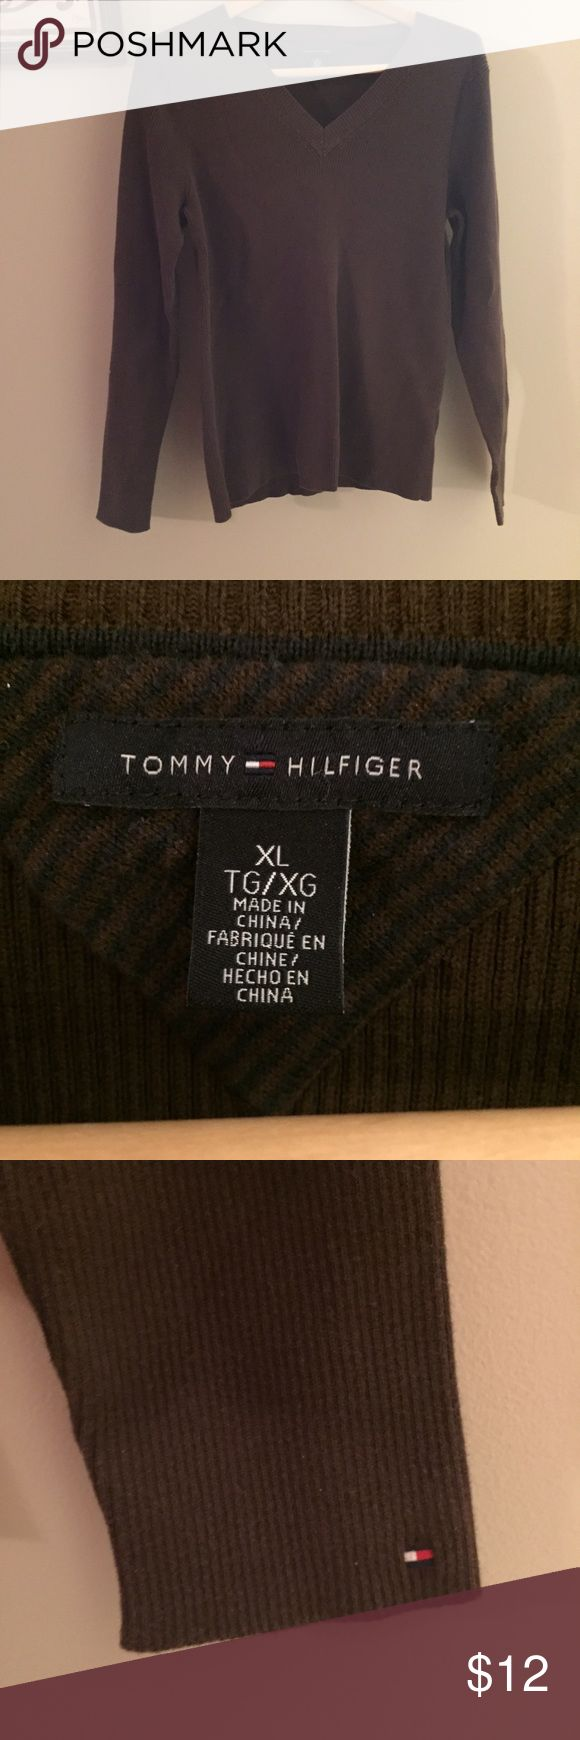 Tommy Hilfiger Ribbed V-neck Gorgeous brown ribbed Tommy Hilfiger shirt. Looks like a sweater but feels like a tee. Super cozy, soft and stylish.  Dress it up or down for whatever the occasion. Gently loved condition. Happy poshing!!! ❤️❤️❤️ Tommy Hilfiger Tops